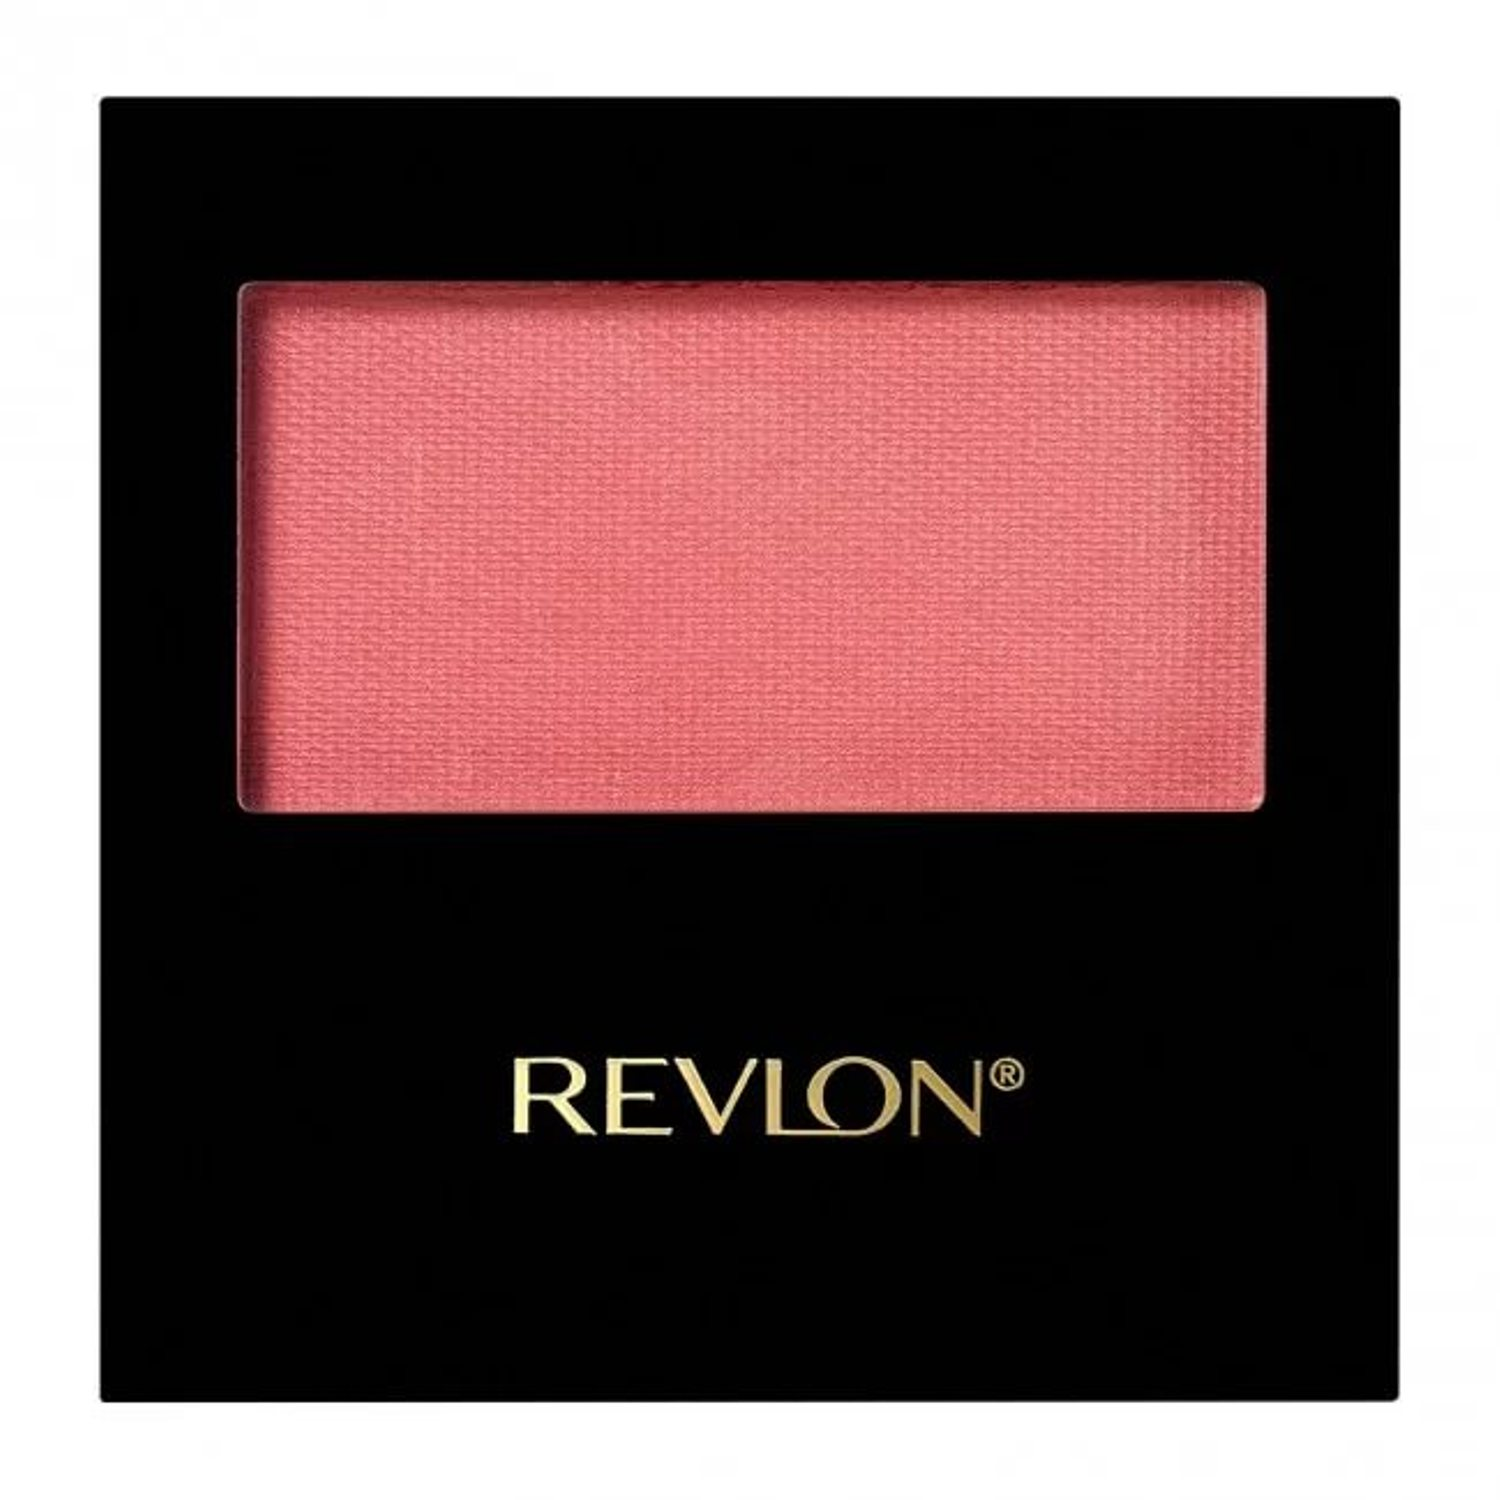 REVLON Румяна для лица 001 / Powder Blush Oh baby pink - Румяна